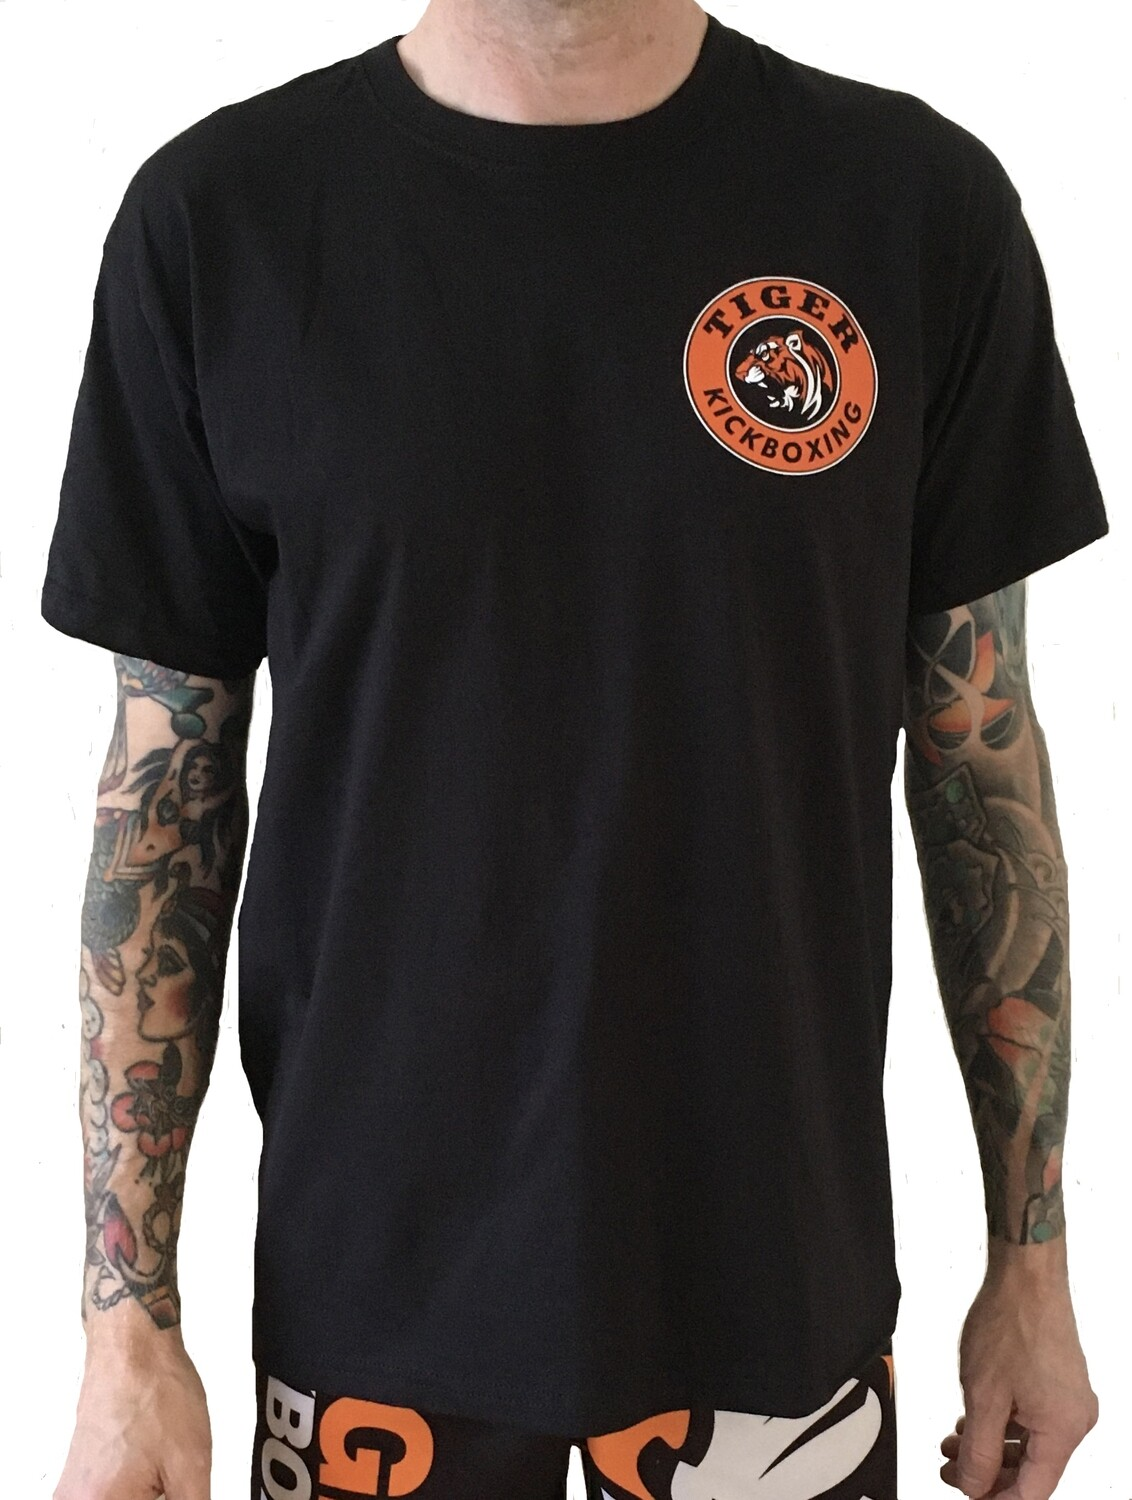 Deluxe Club T Shirt